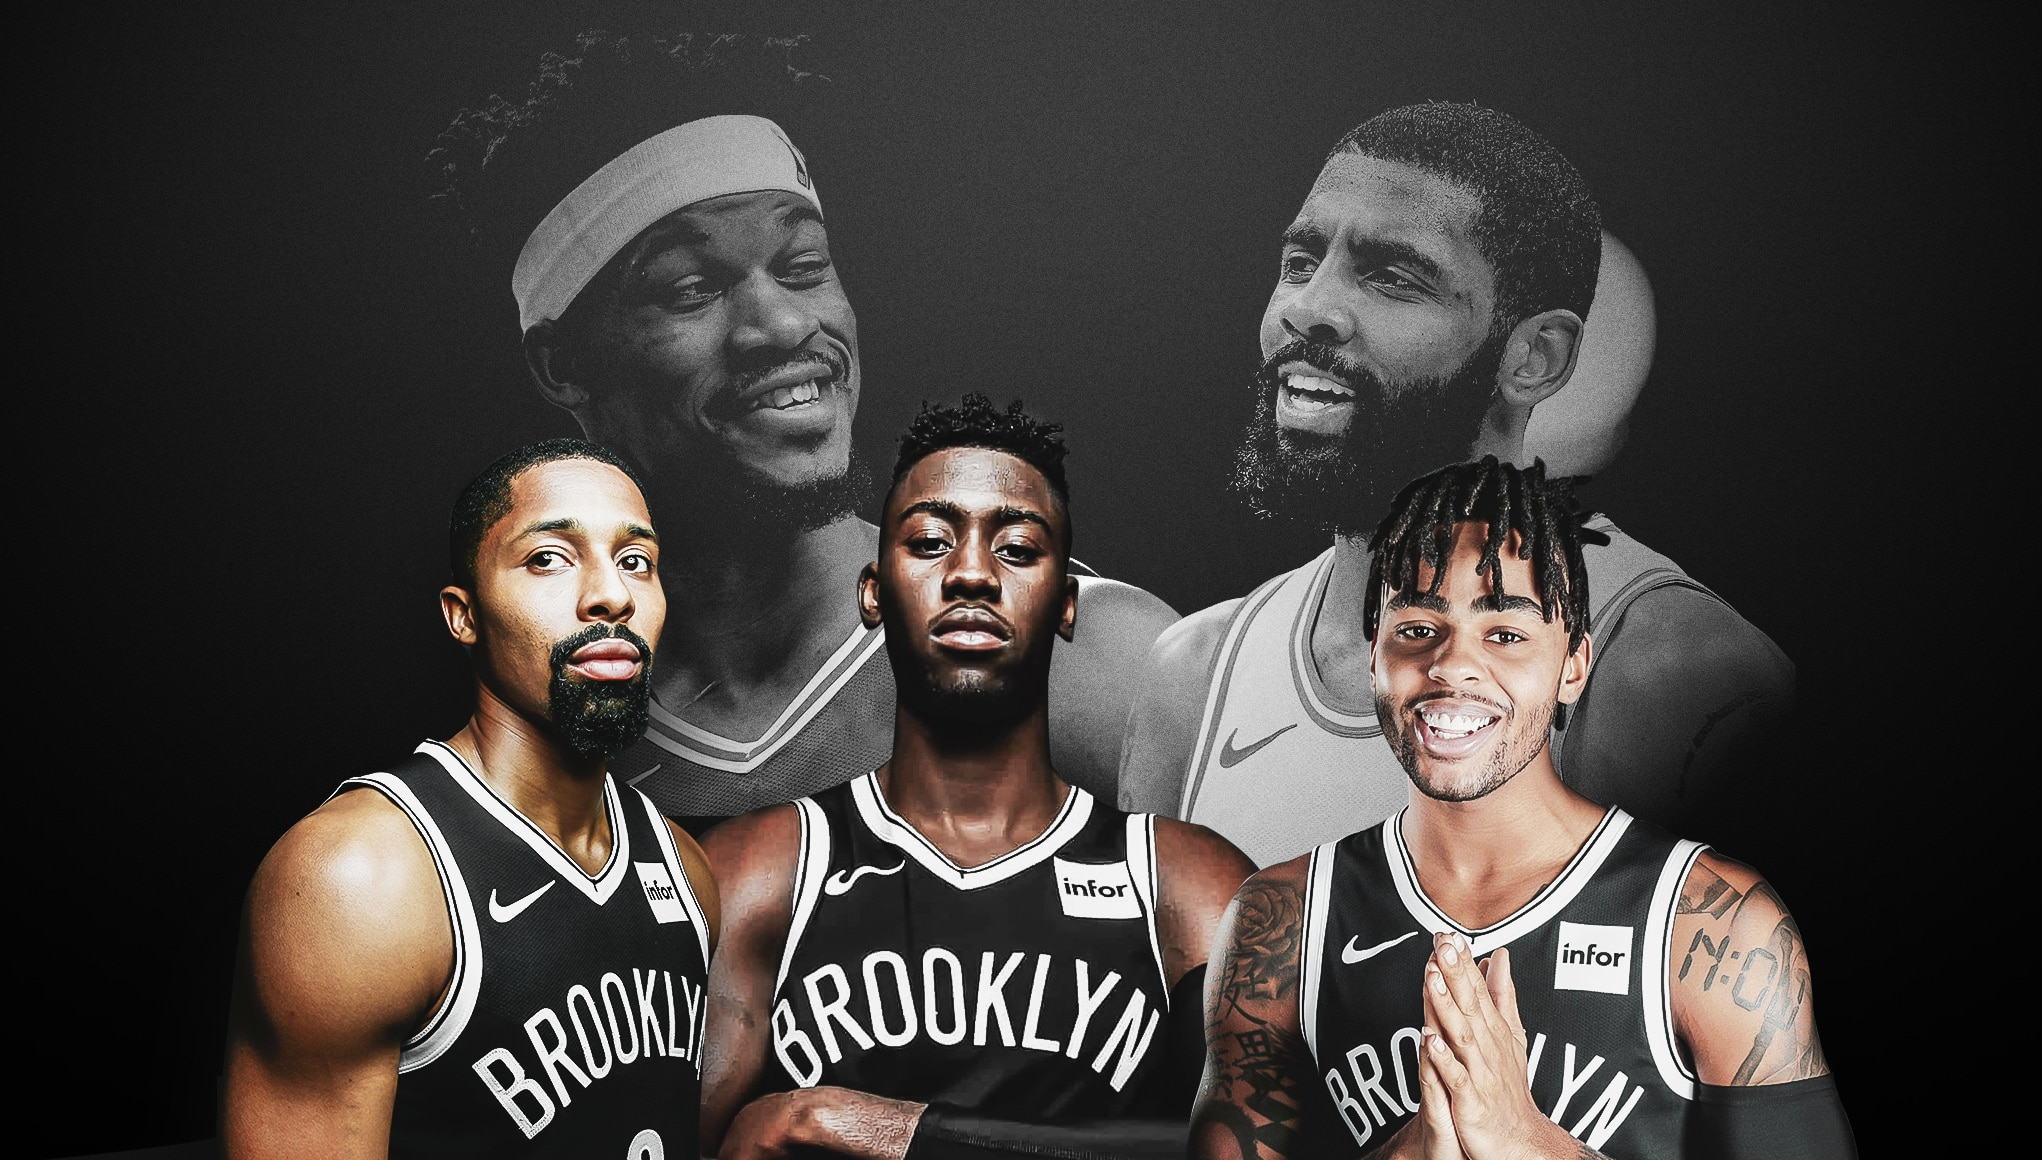 Brooklyn Nets Schedule 2020 Brooklyn Nets are unlikely to obtain any major free agents, and